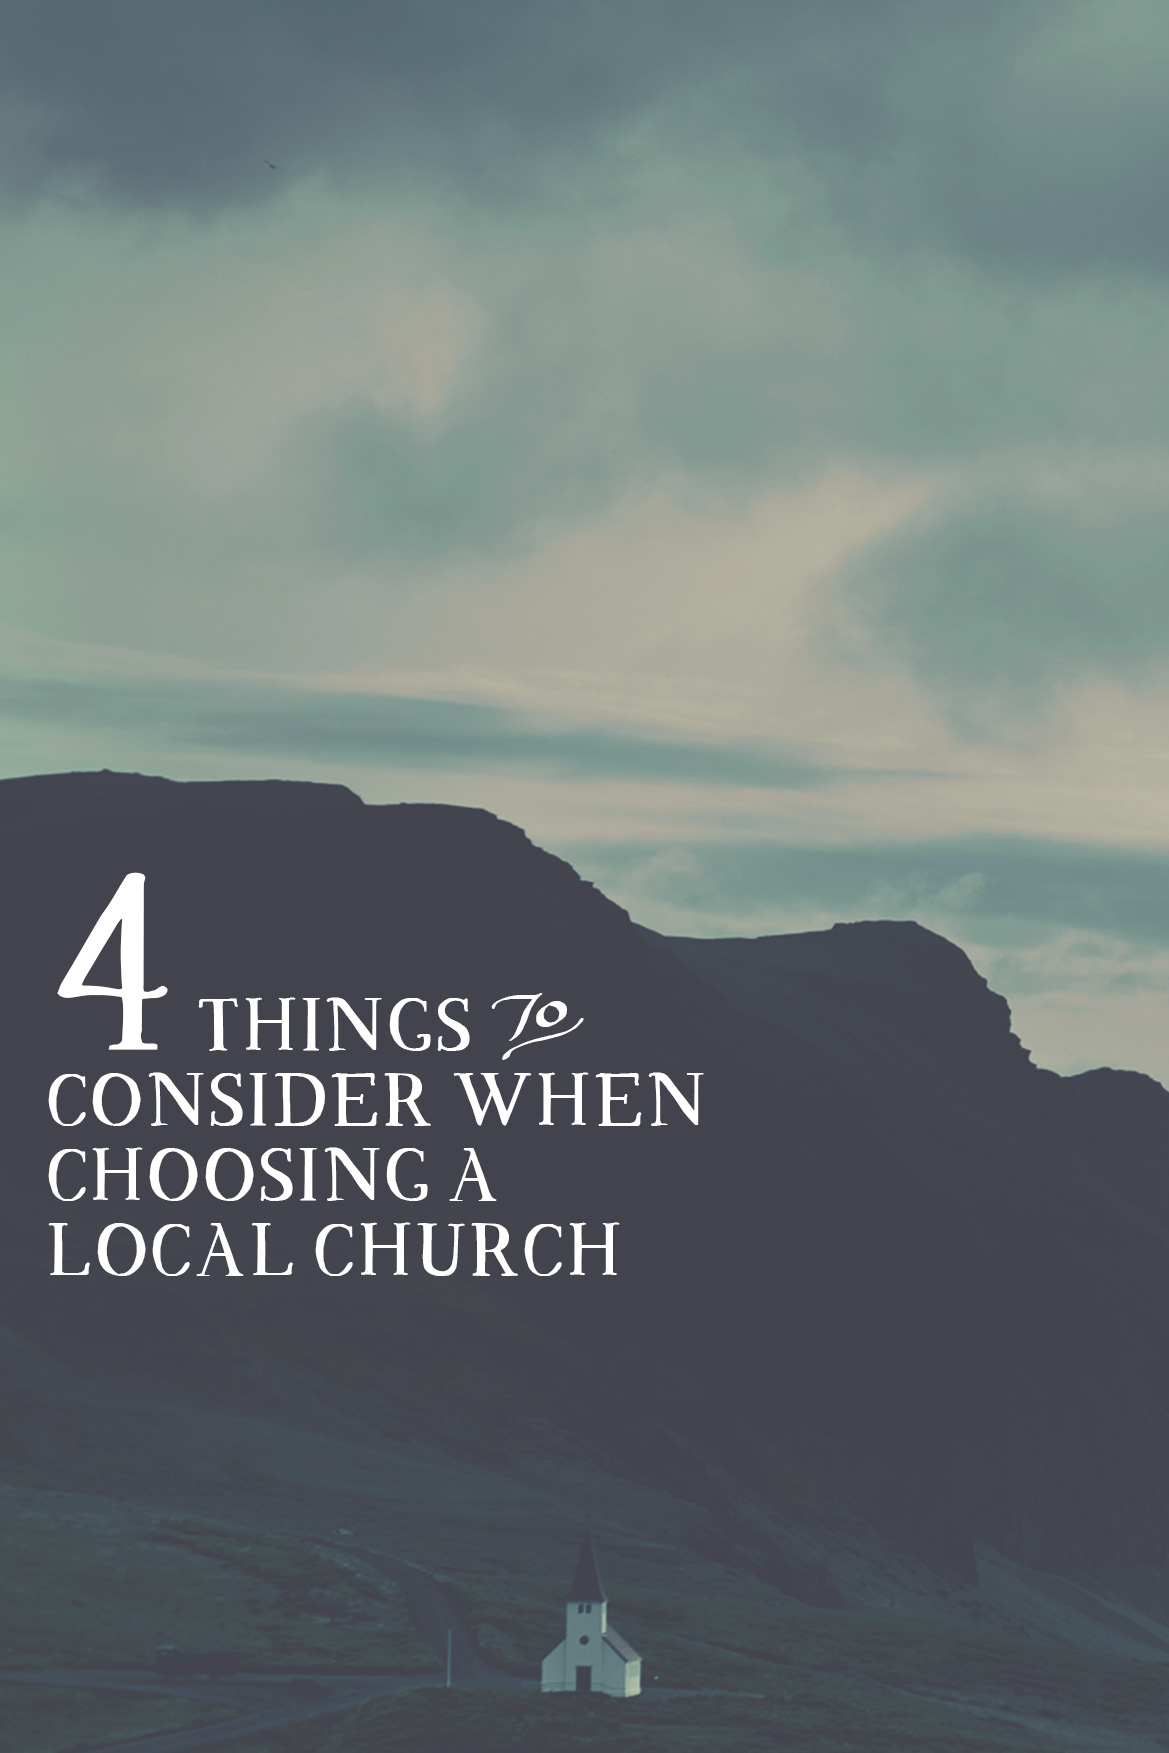 4 THINGS TO CONSIDER WHEN CHOOSING A LOCAL CHURCH - New Identity Magazine